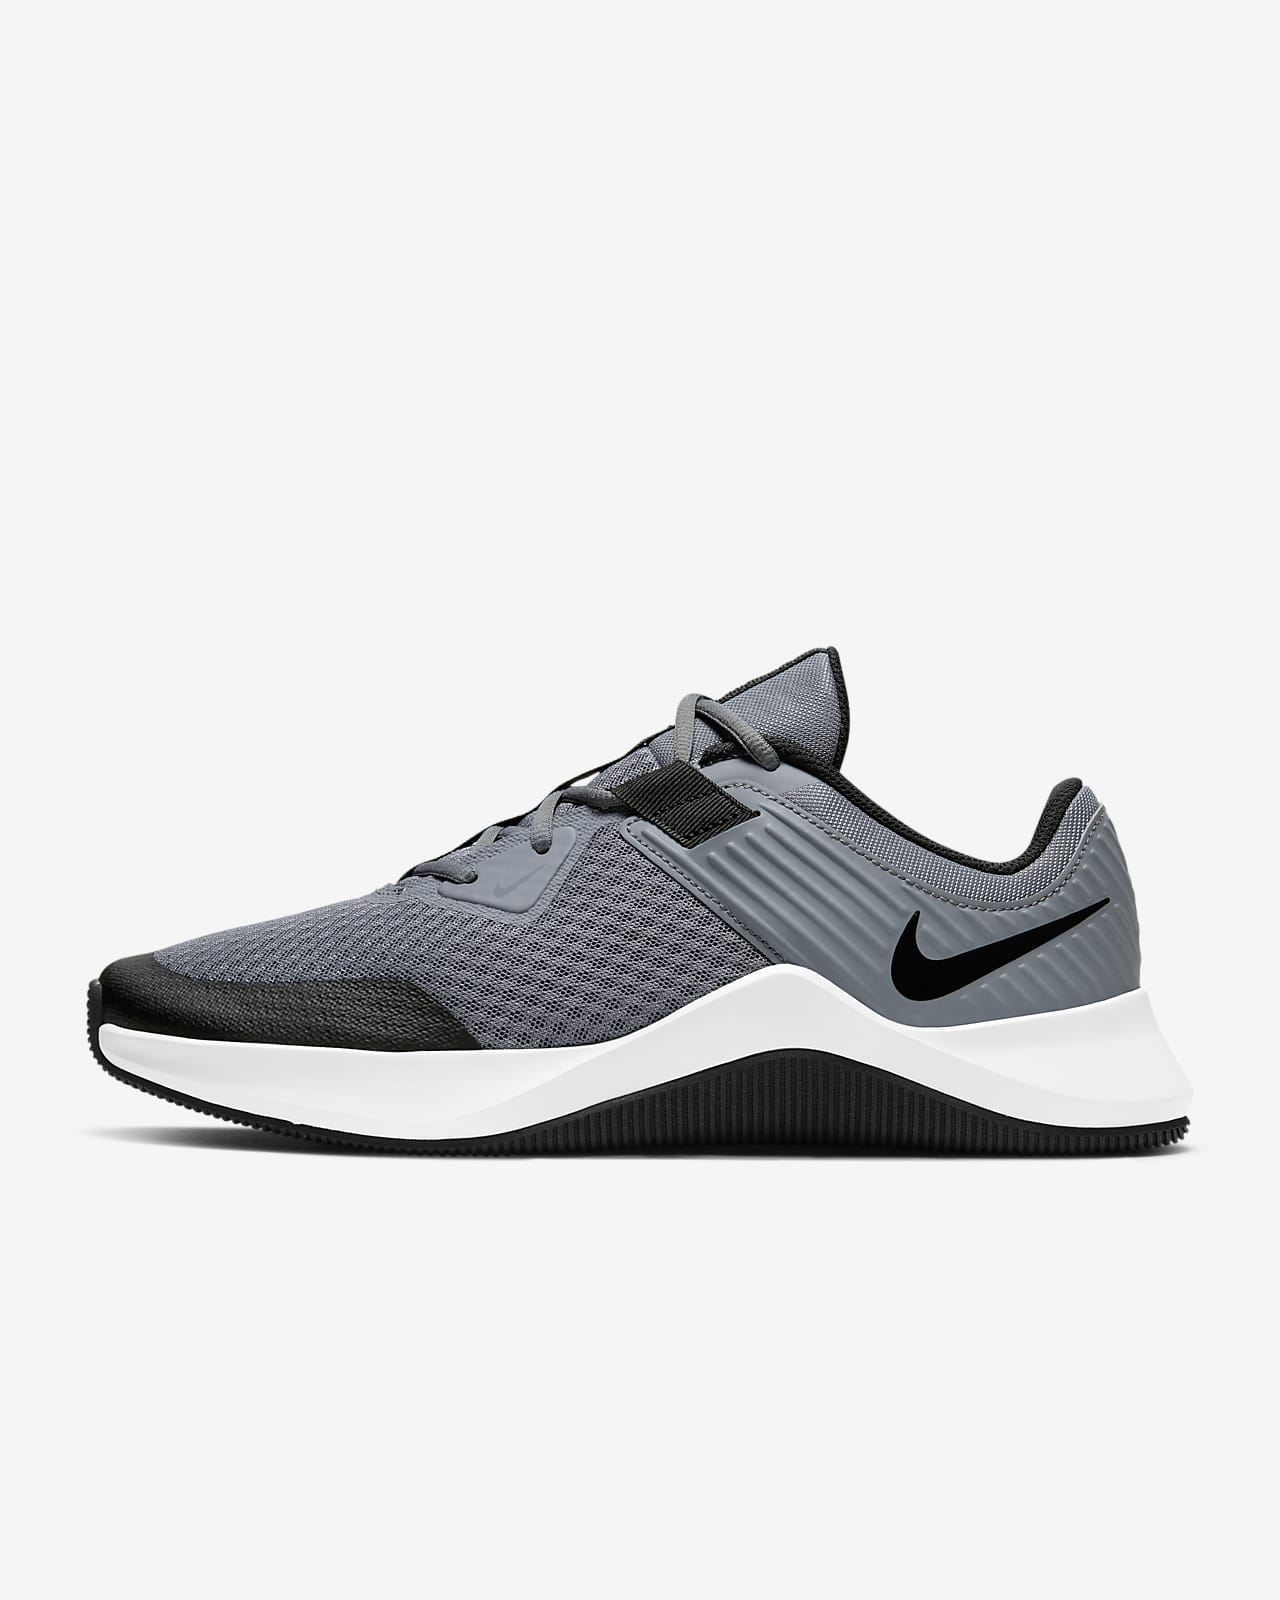 Nike MC Trainer Herren-Trainingsschuh